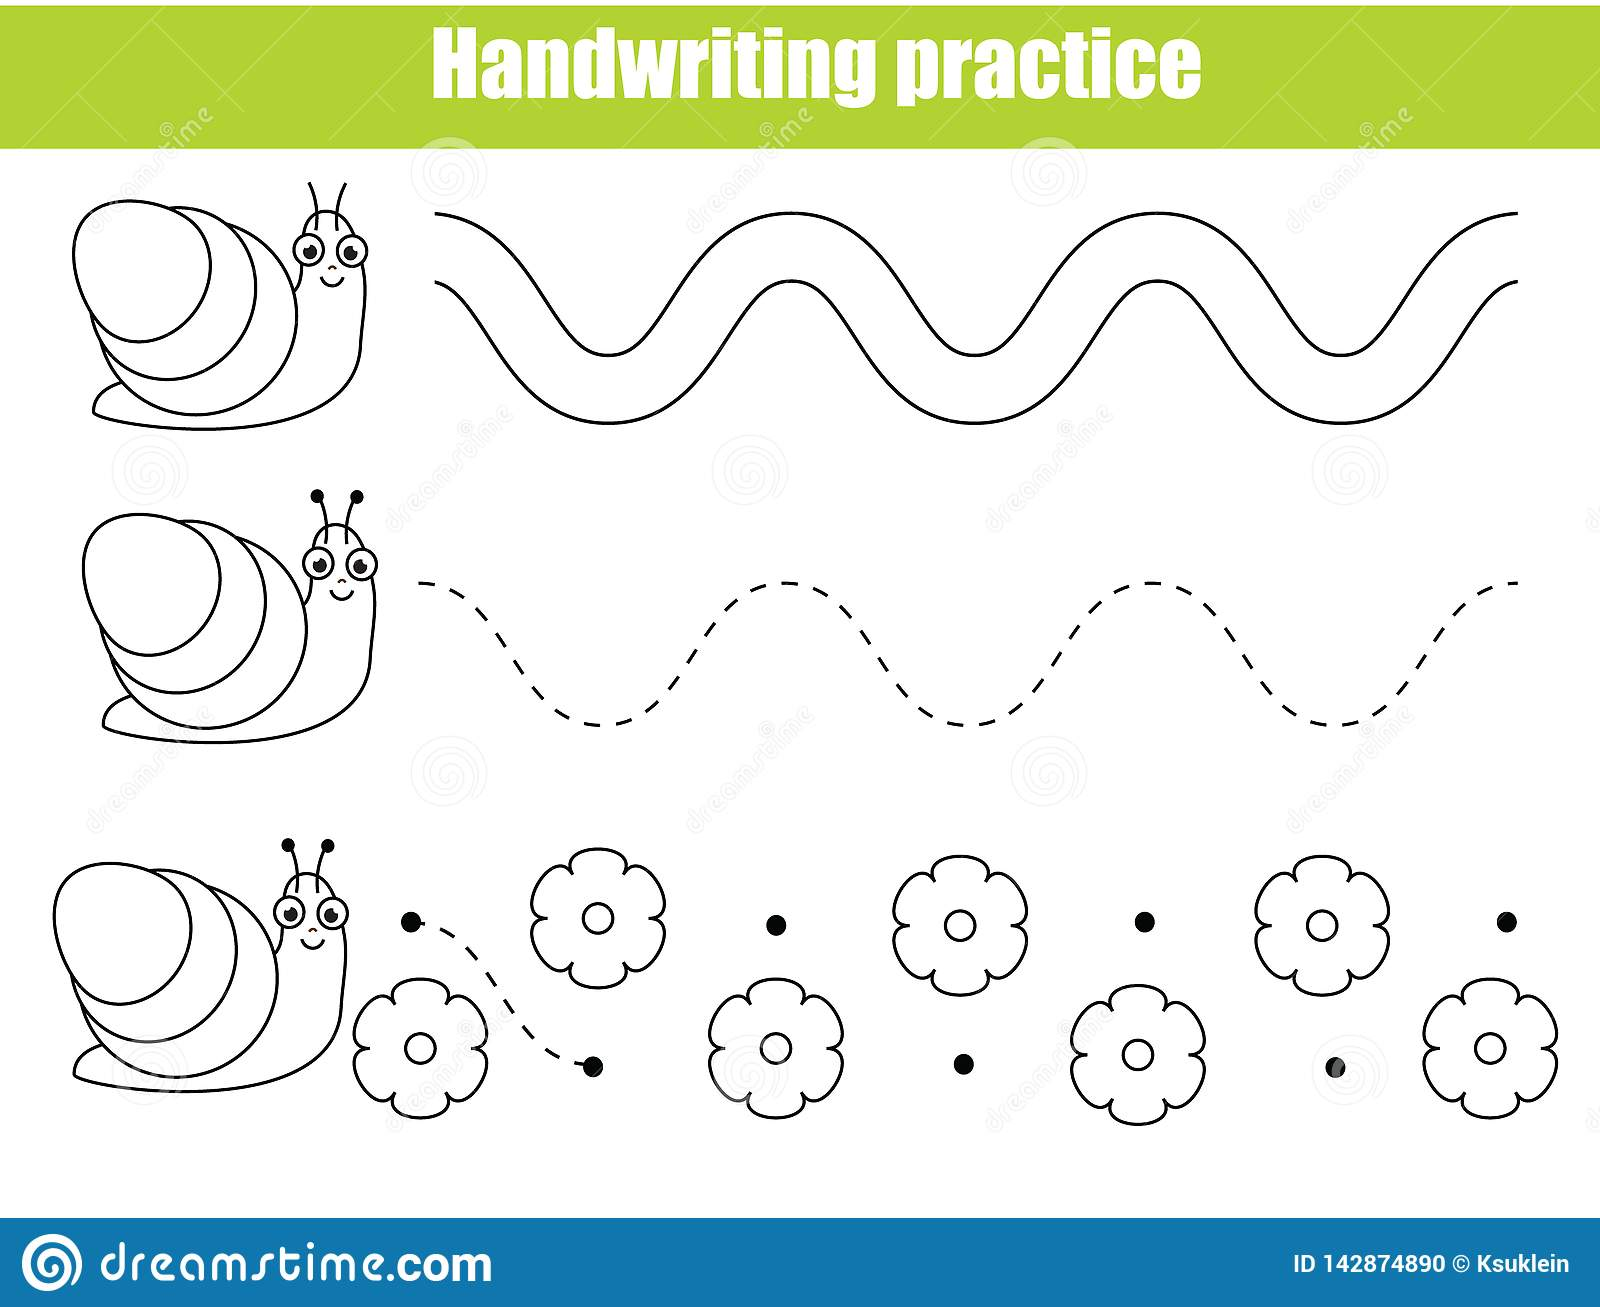 Preschool Handwriting Practice Sheet Educational Children